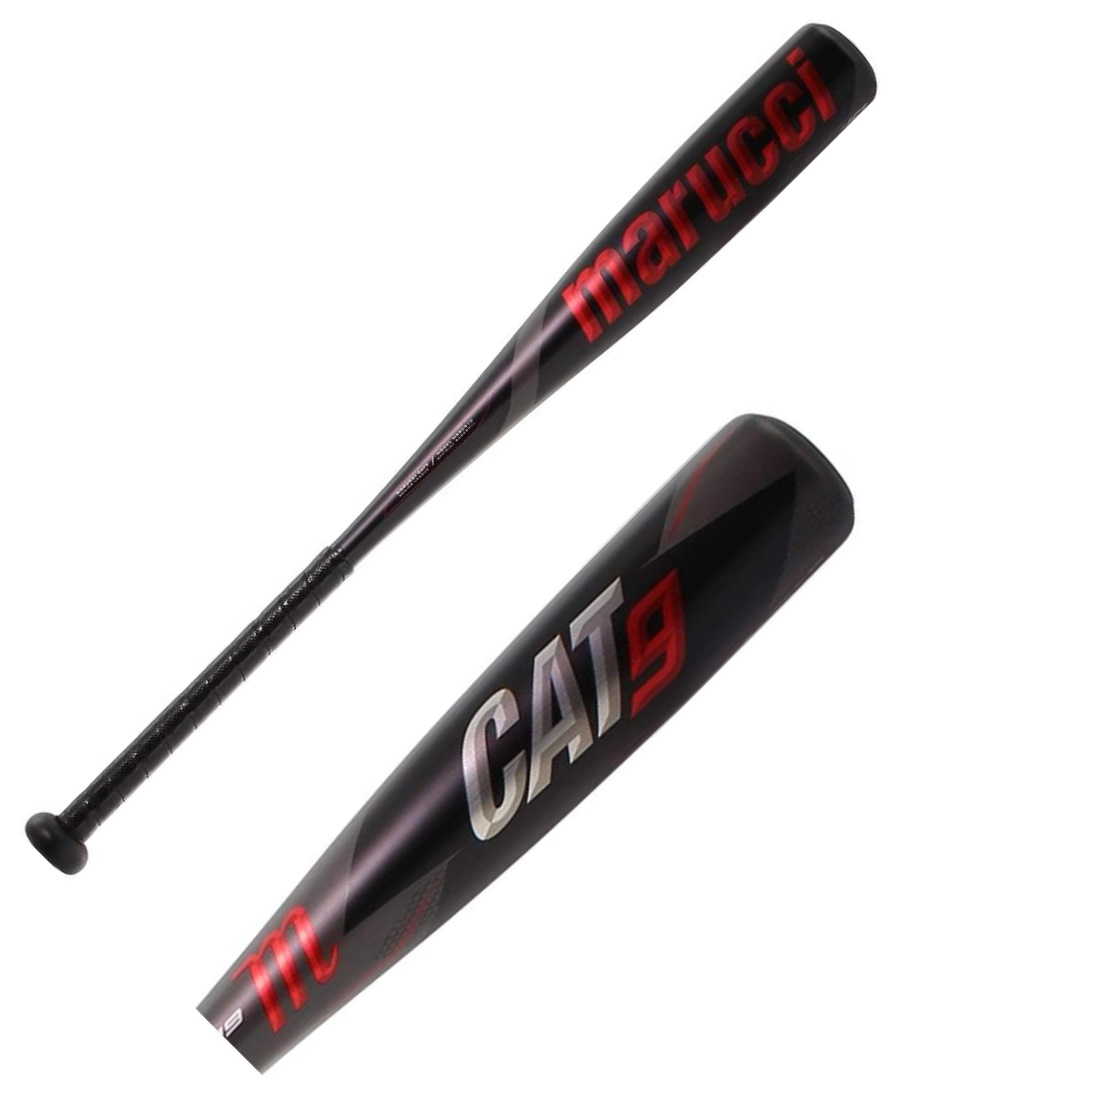 marucci-cat-9-10-usssa-baseball-bat-28-inch-18-oz MSBC910-2818 Marucci  Utilizing a three-stage thermal treatment process our new AZR alloy offers